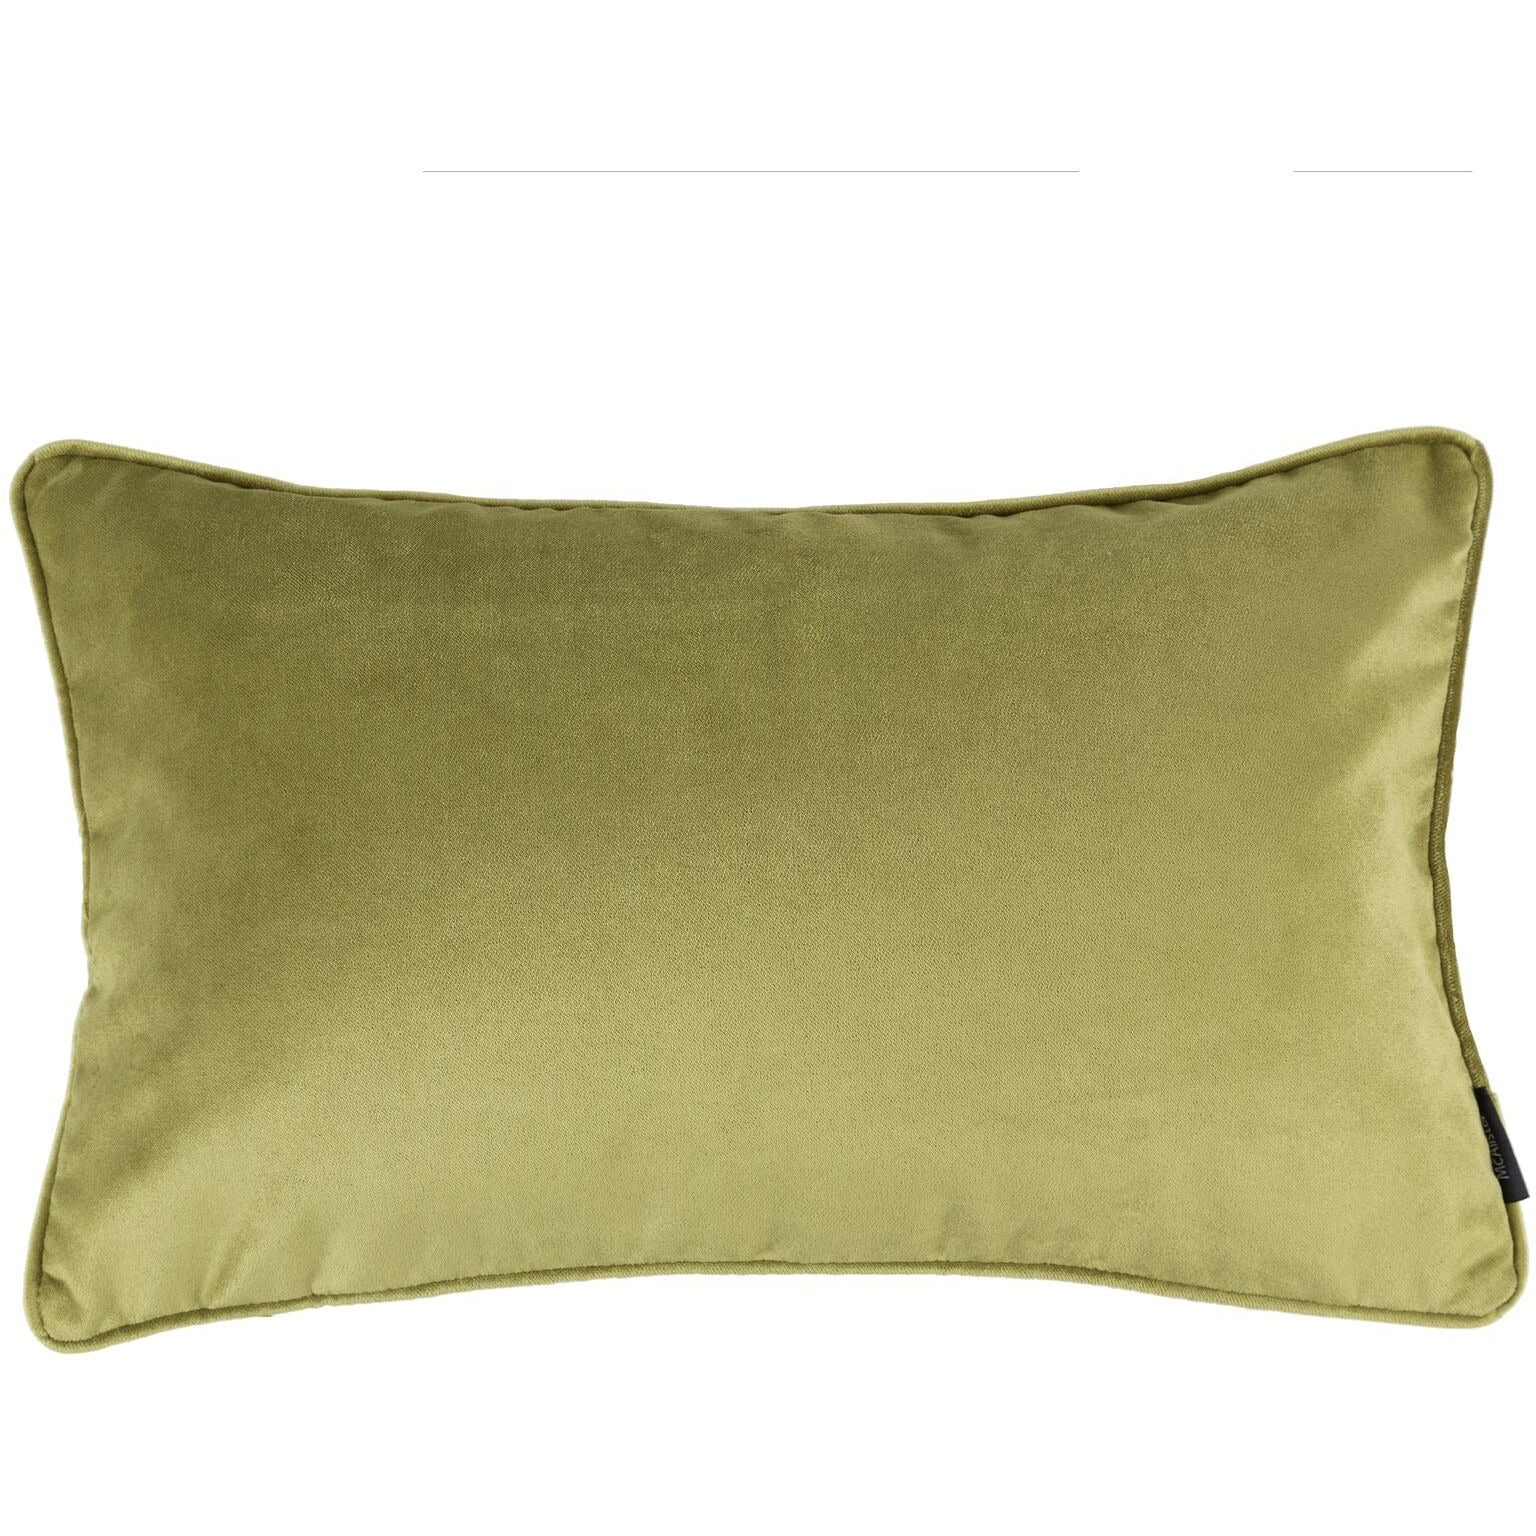 McAlister Textiles Matt Lime Green Velvet Cushion Cushions and Covers Cover Only 50cm x 30cm